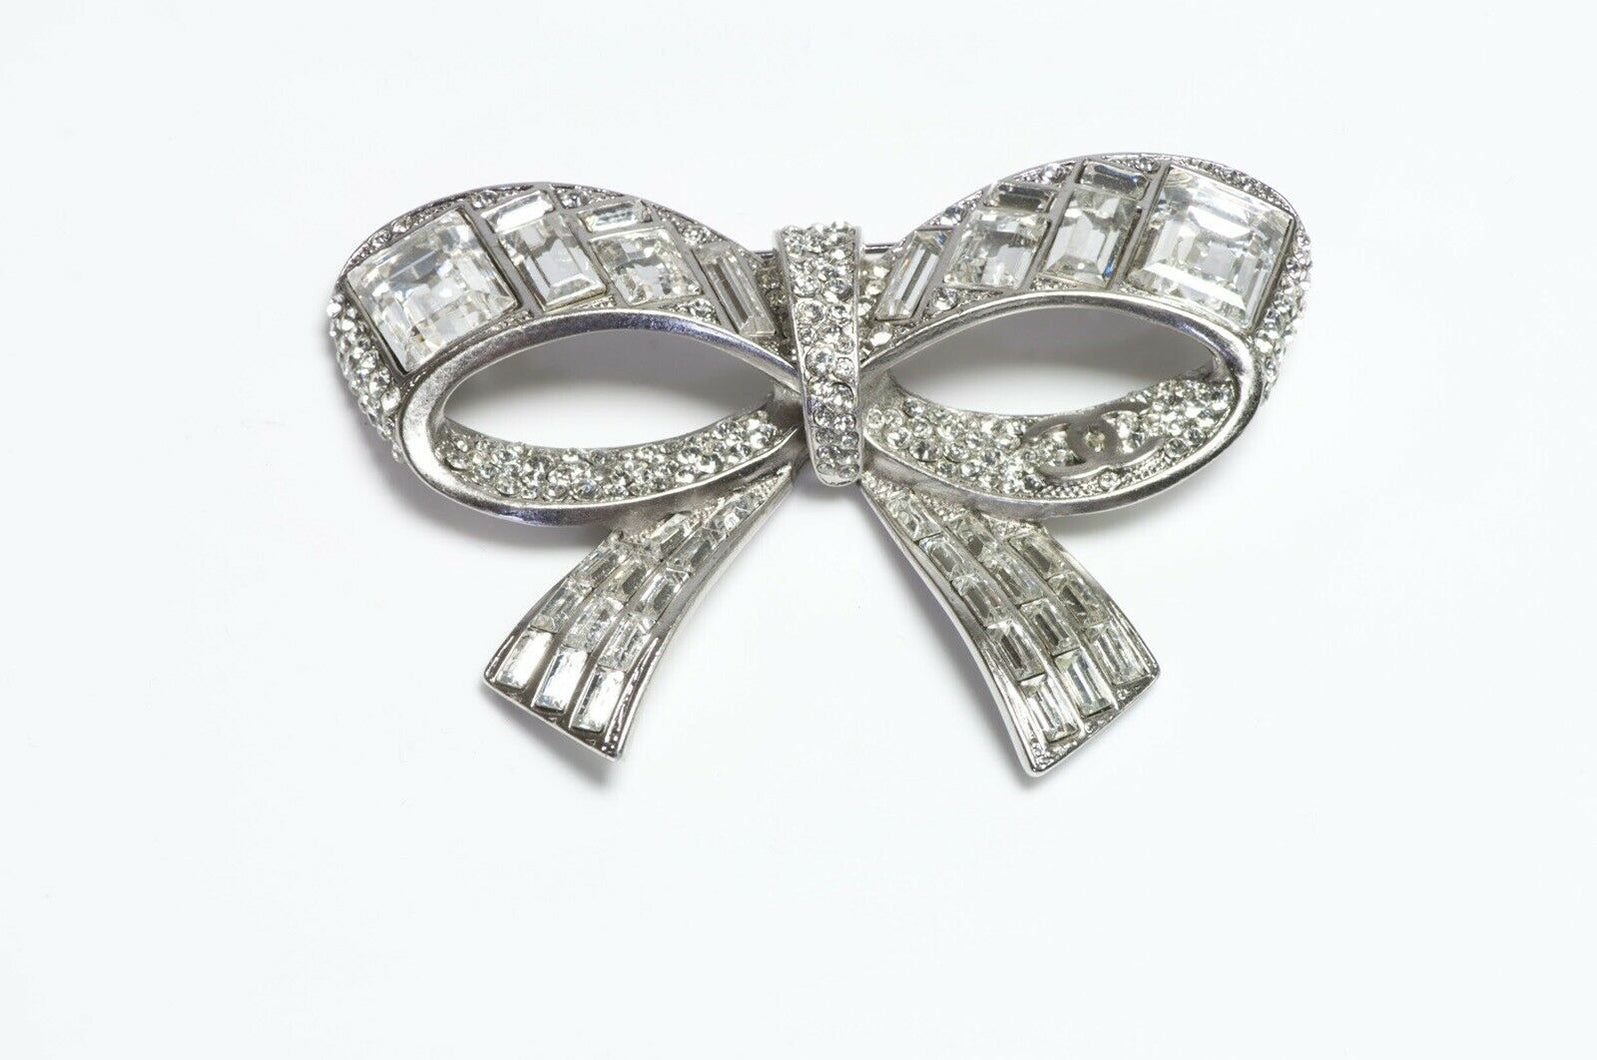 chanel-paris-cc-spring-2008-crystal-bow-brooch